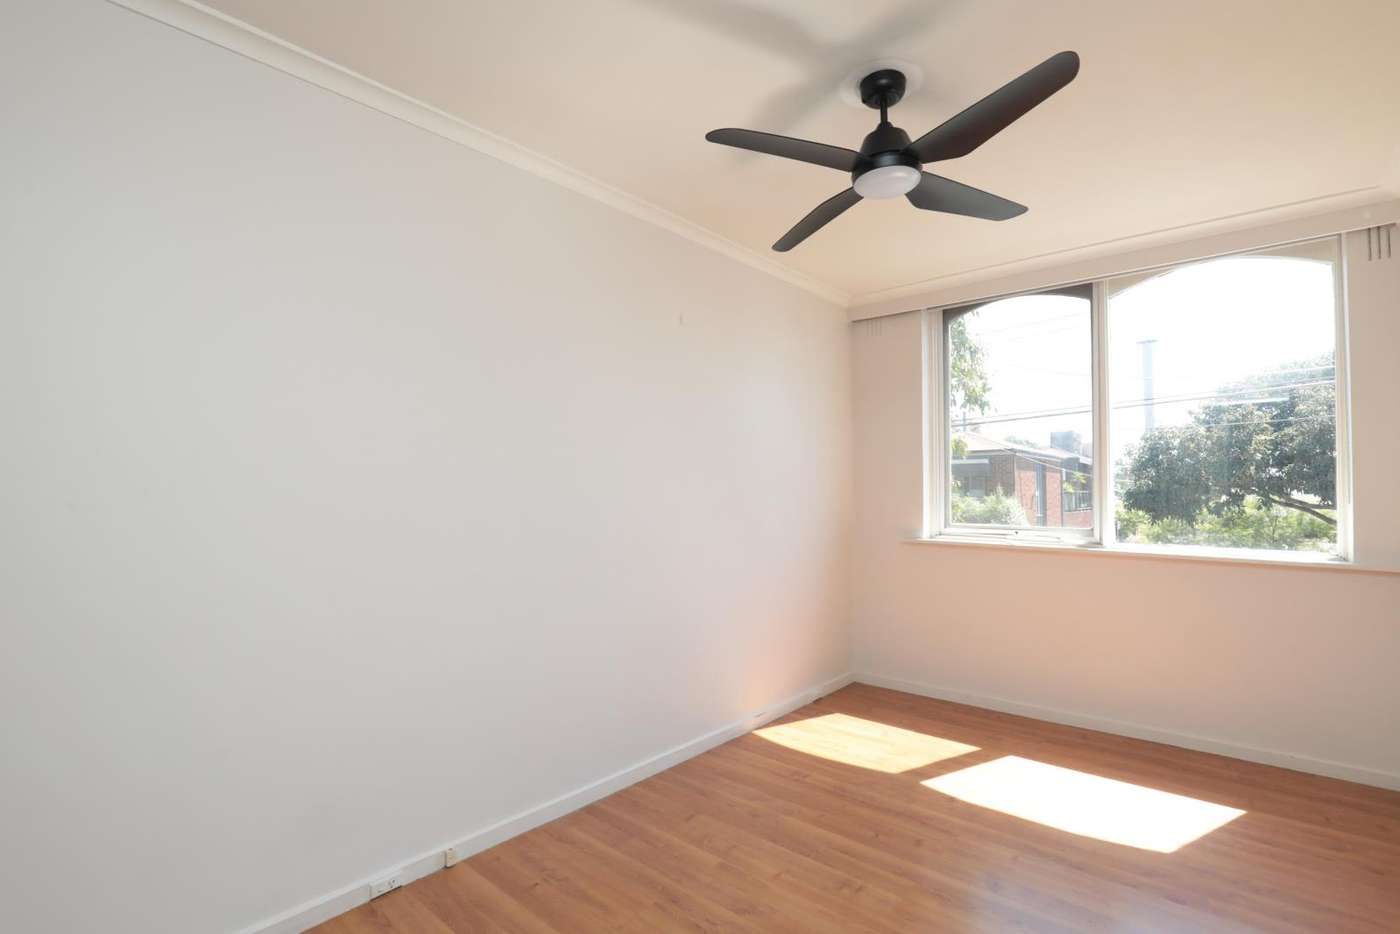 Sixth view of Homely apartment listing, 3/46-50 Baker Street, Richmond VIC 3121